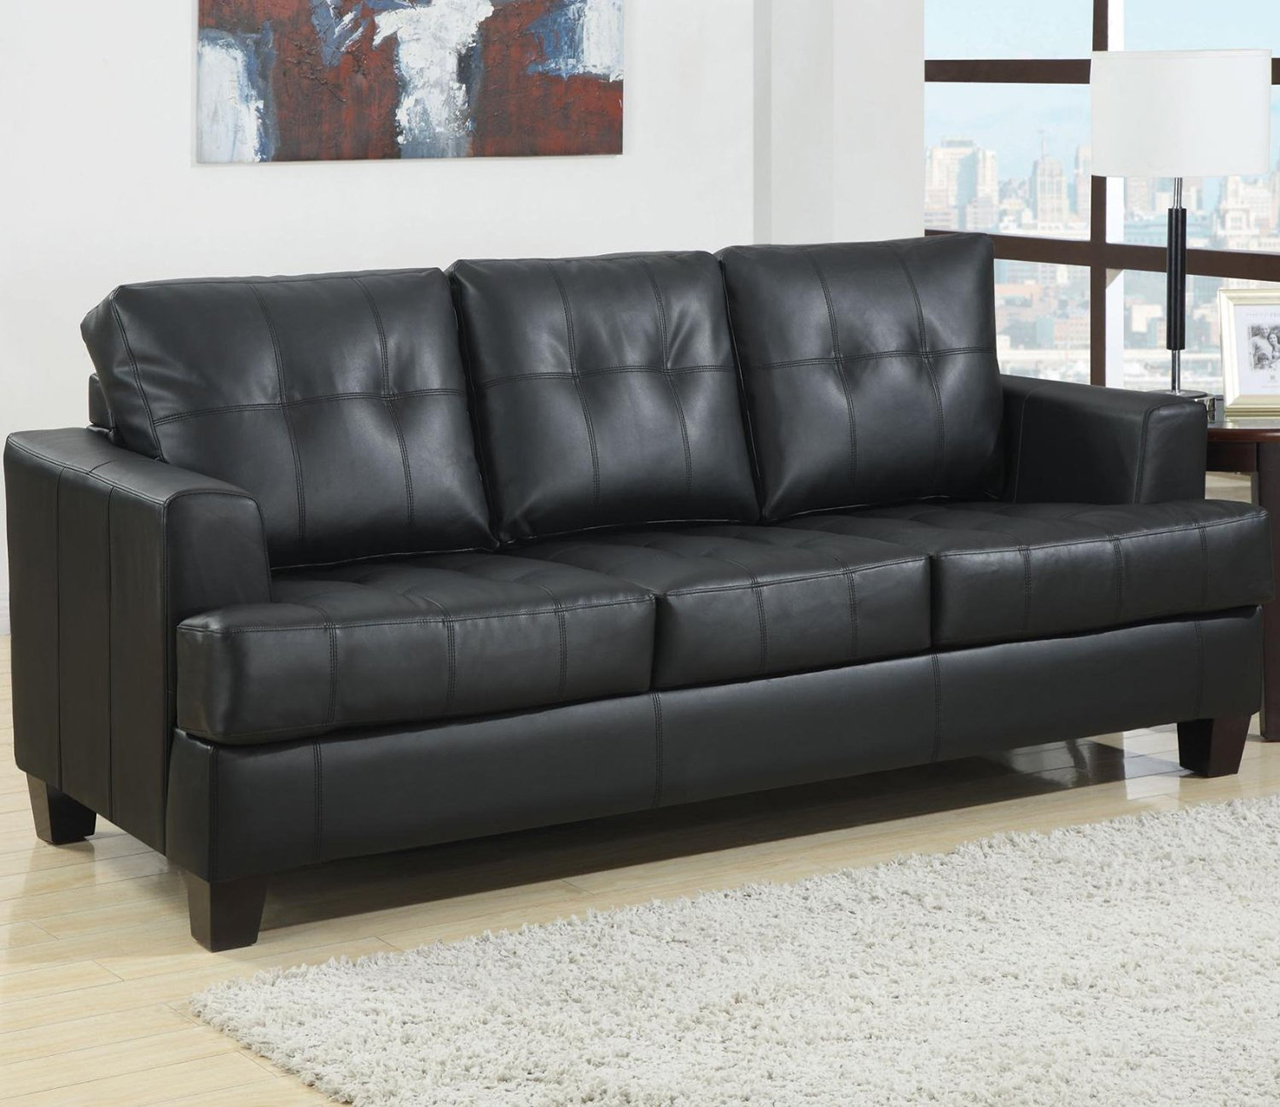 Sectional Couch Queen Sleeper